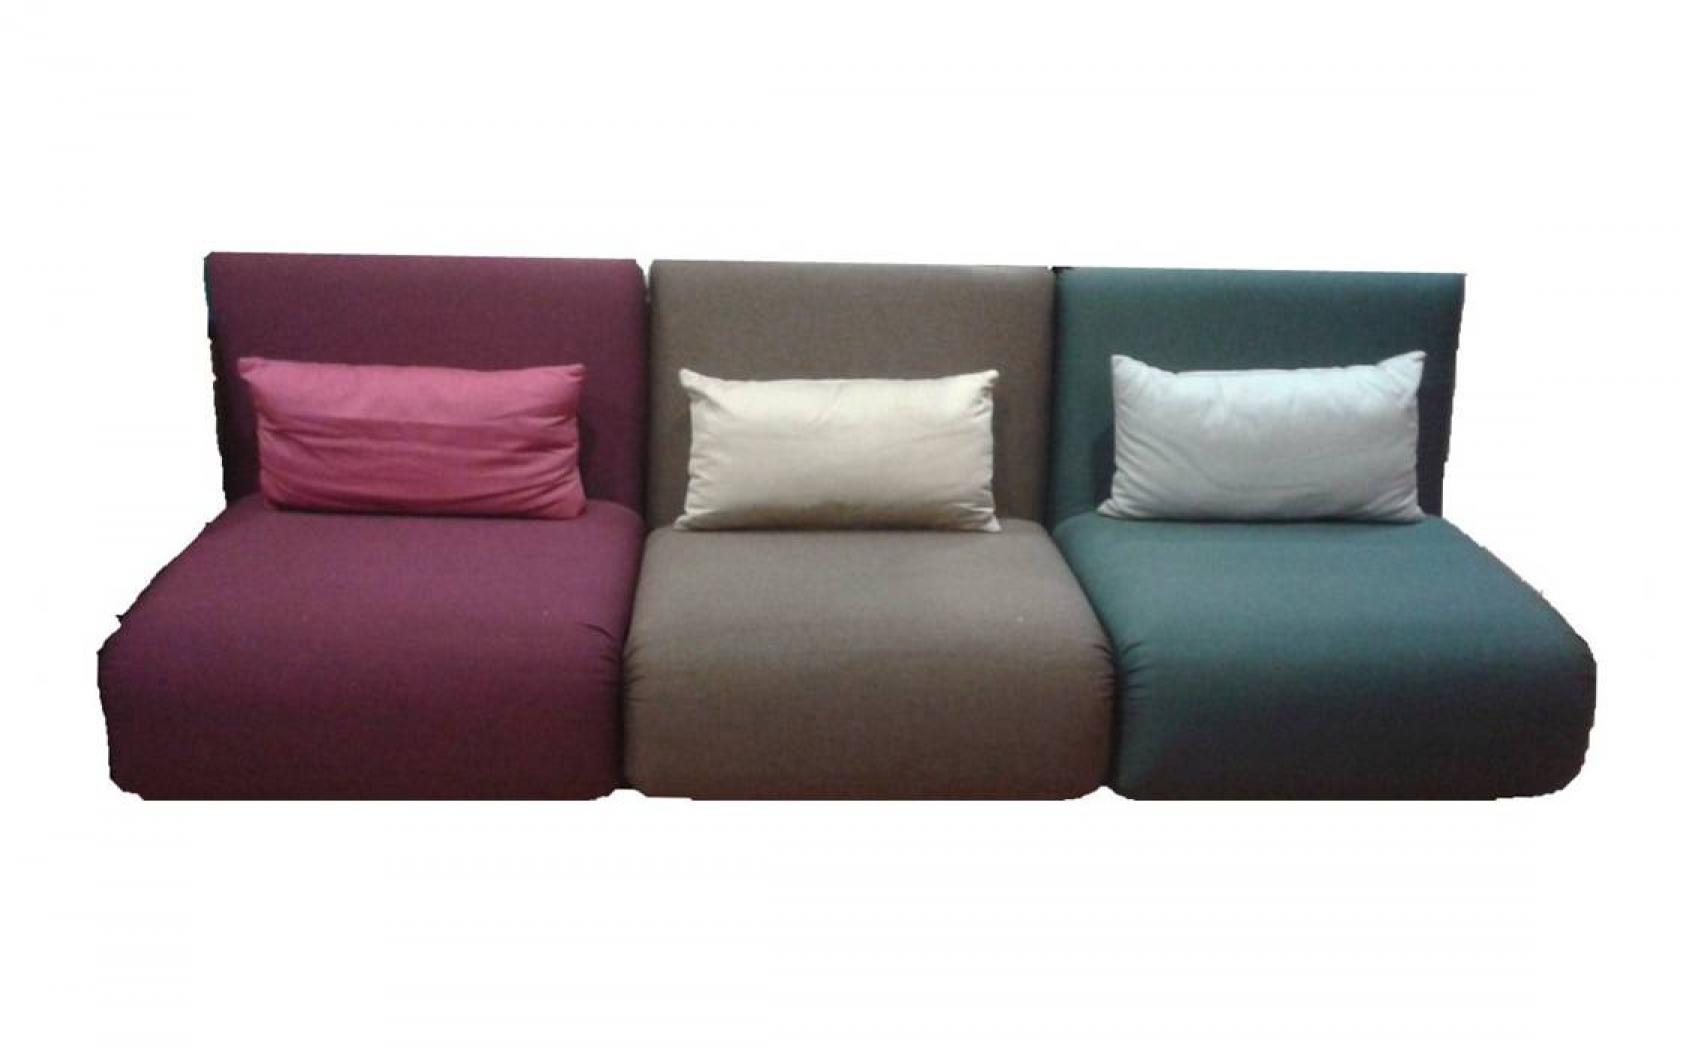 Photos canap lit pas cher 1 place for Sofa lit pas cher